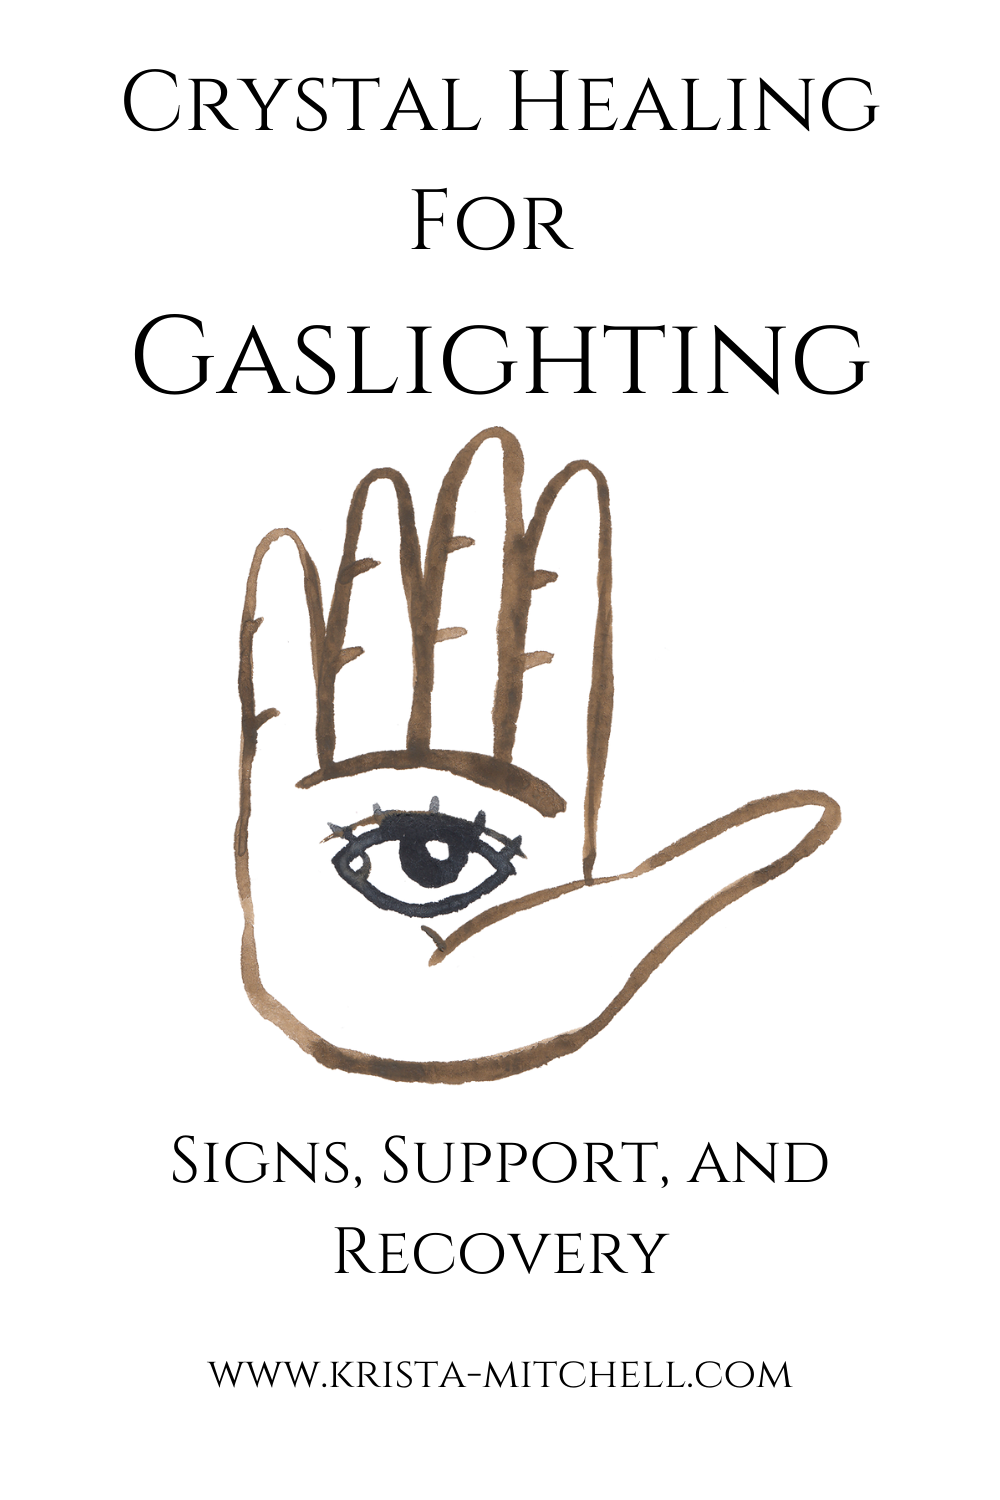 Crystal Healing for Gaslighting: Signs, Support, and Recovery / www.krista-mitchell.com